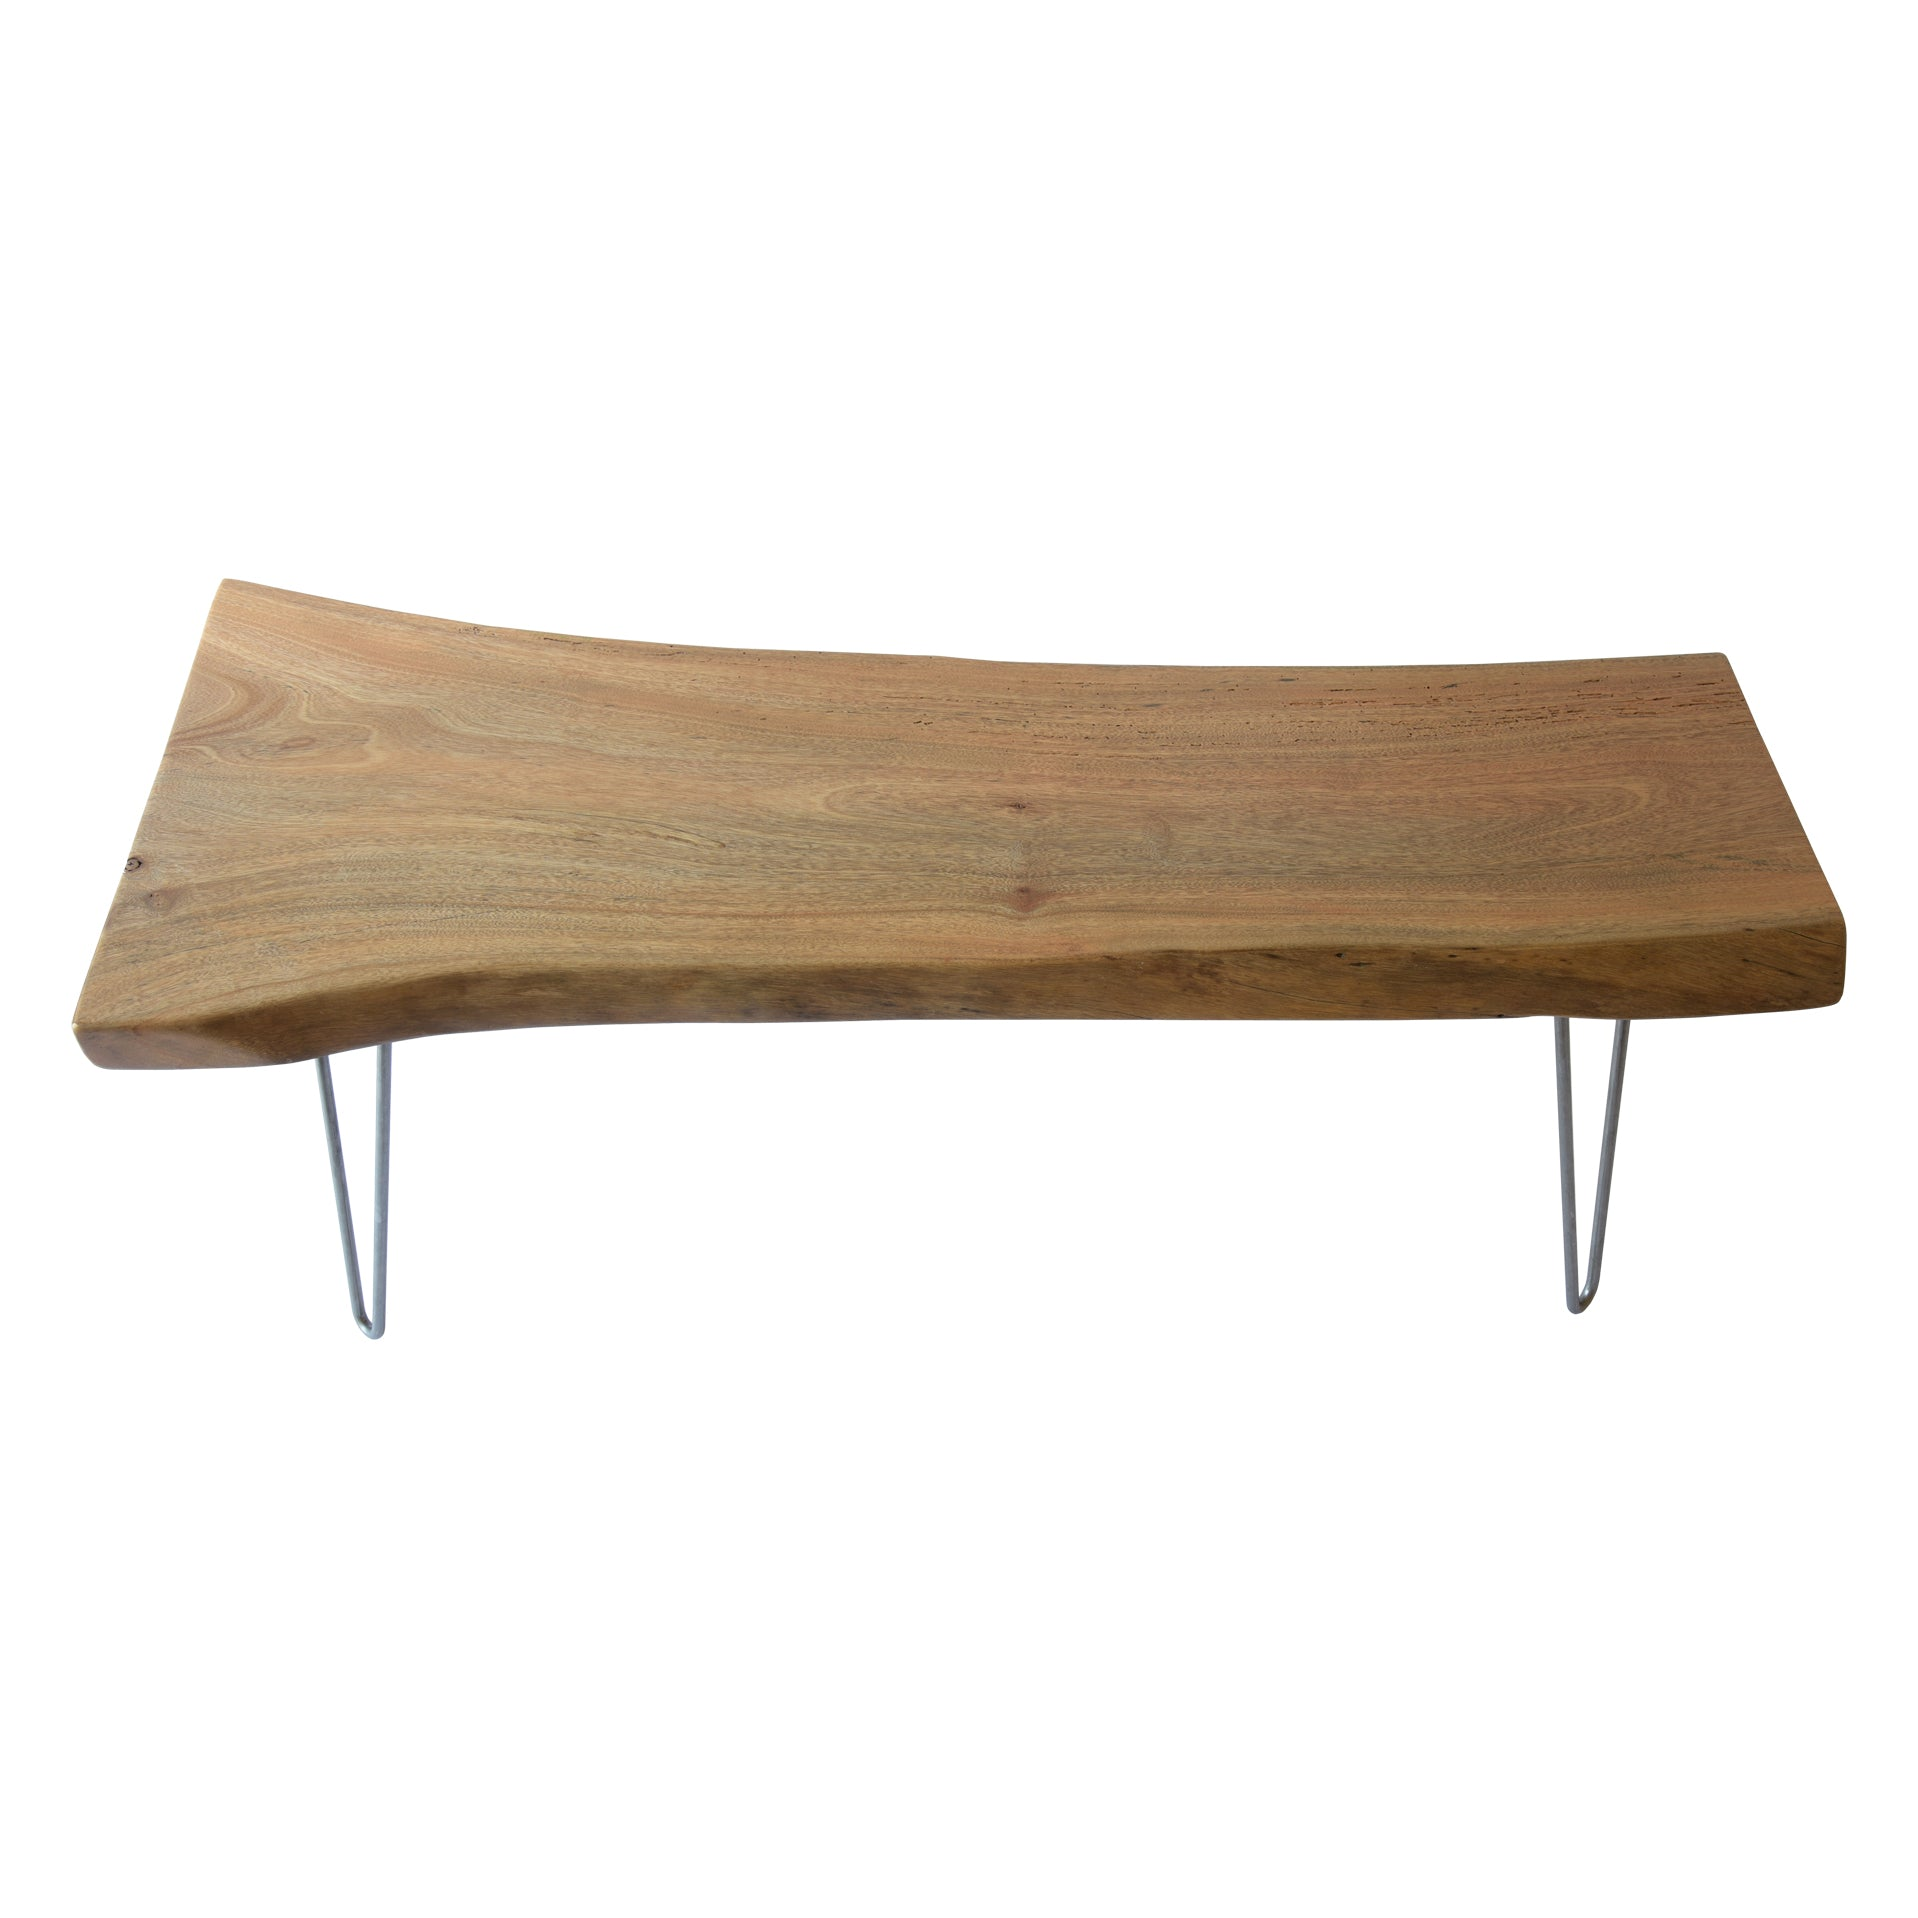 Light Live Edge Slab Handmade Coffee Table